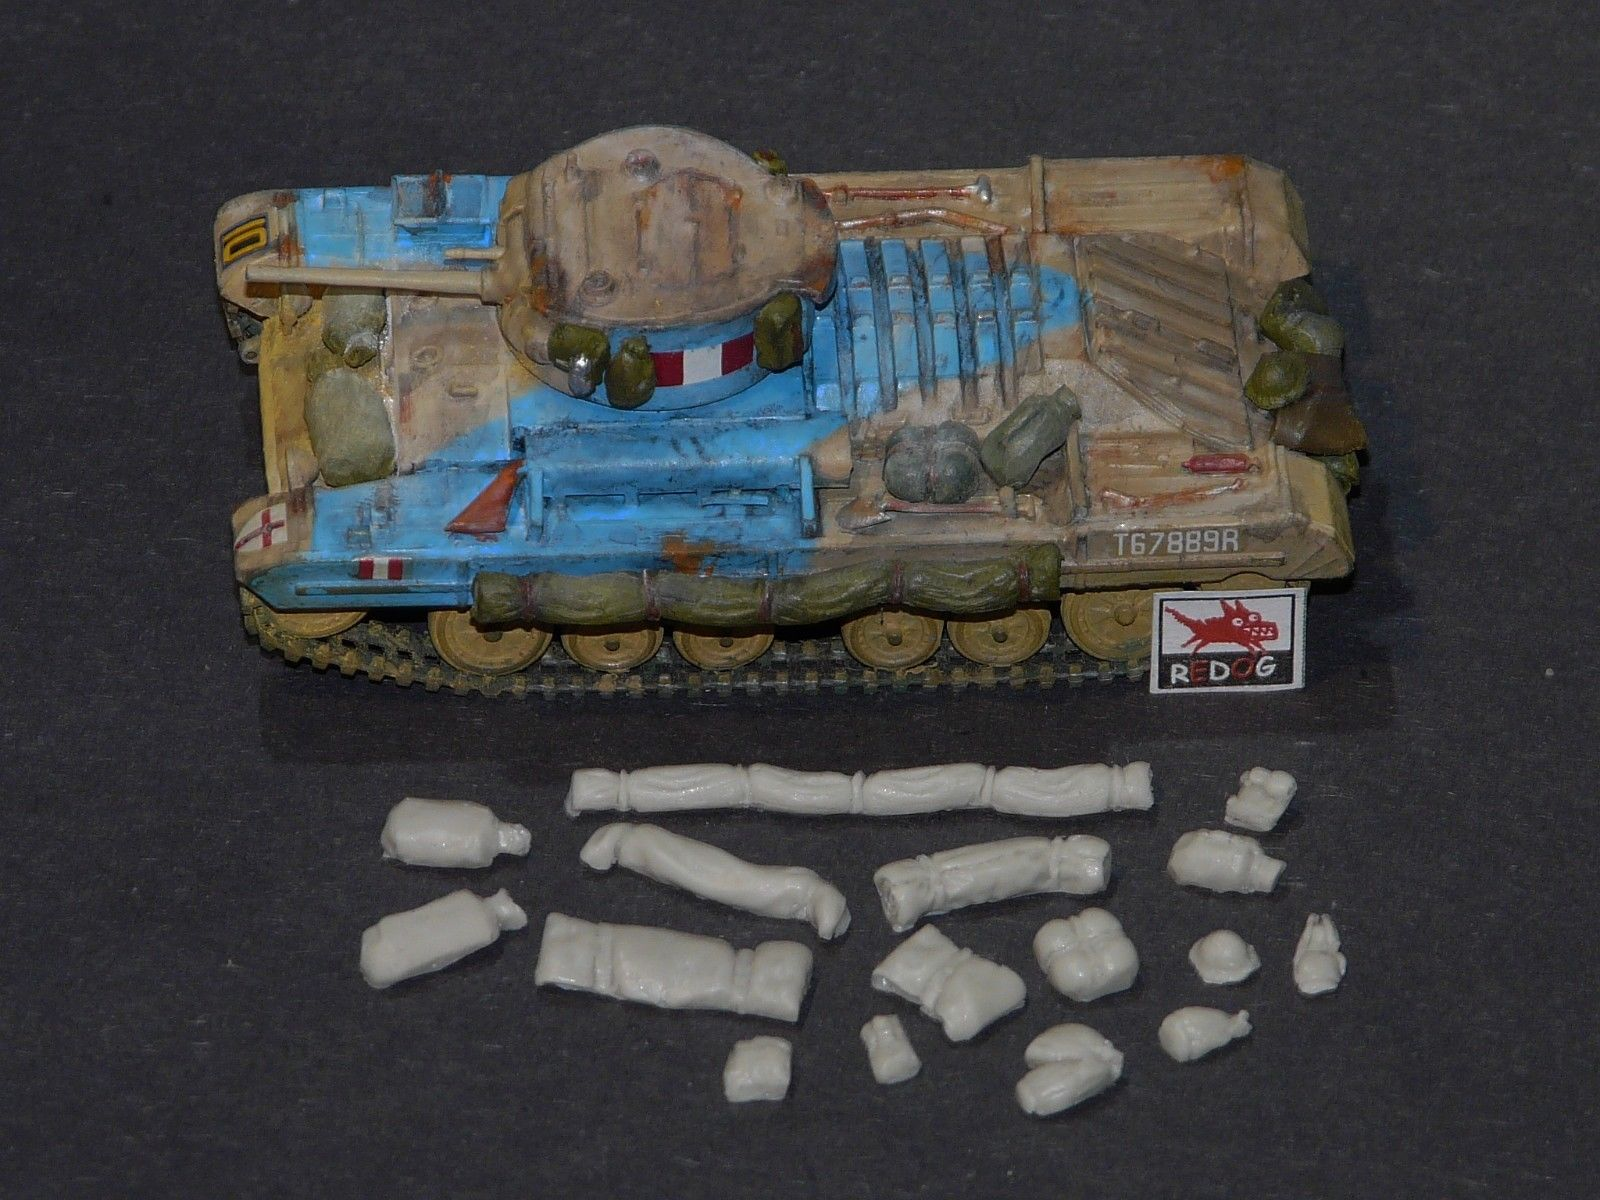 1:72 Valentine Mk II Tank Military Scale Model Stowage Kit Diorama Accessories - redoguk